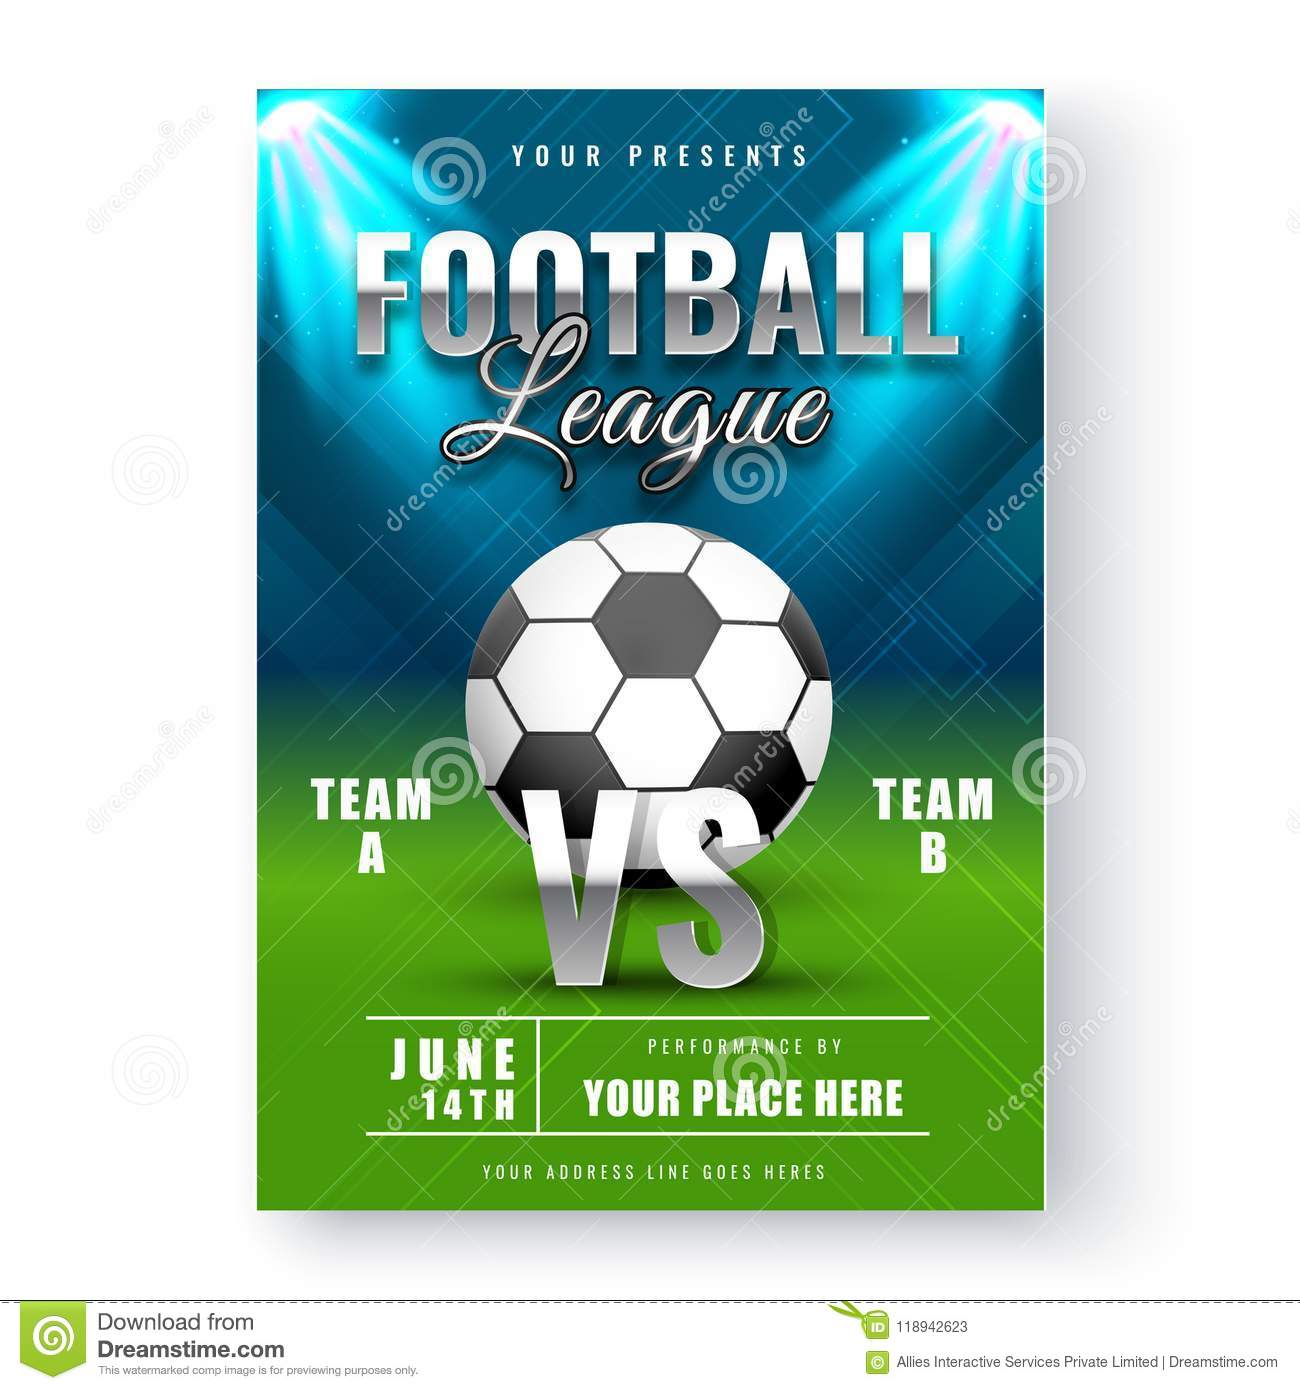 Glossy Football League Flyer Or Banner Designs With Match Detail